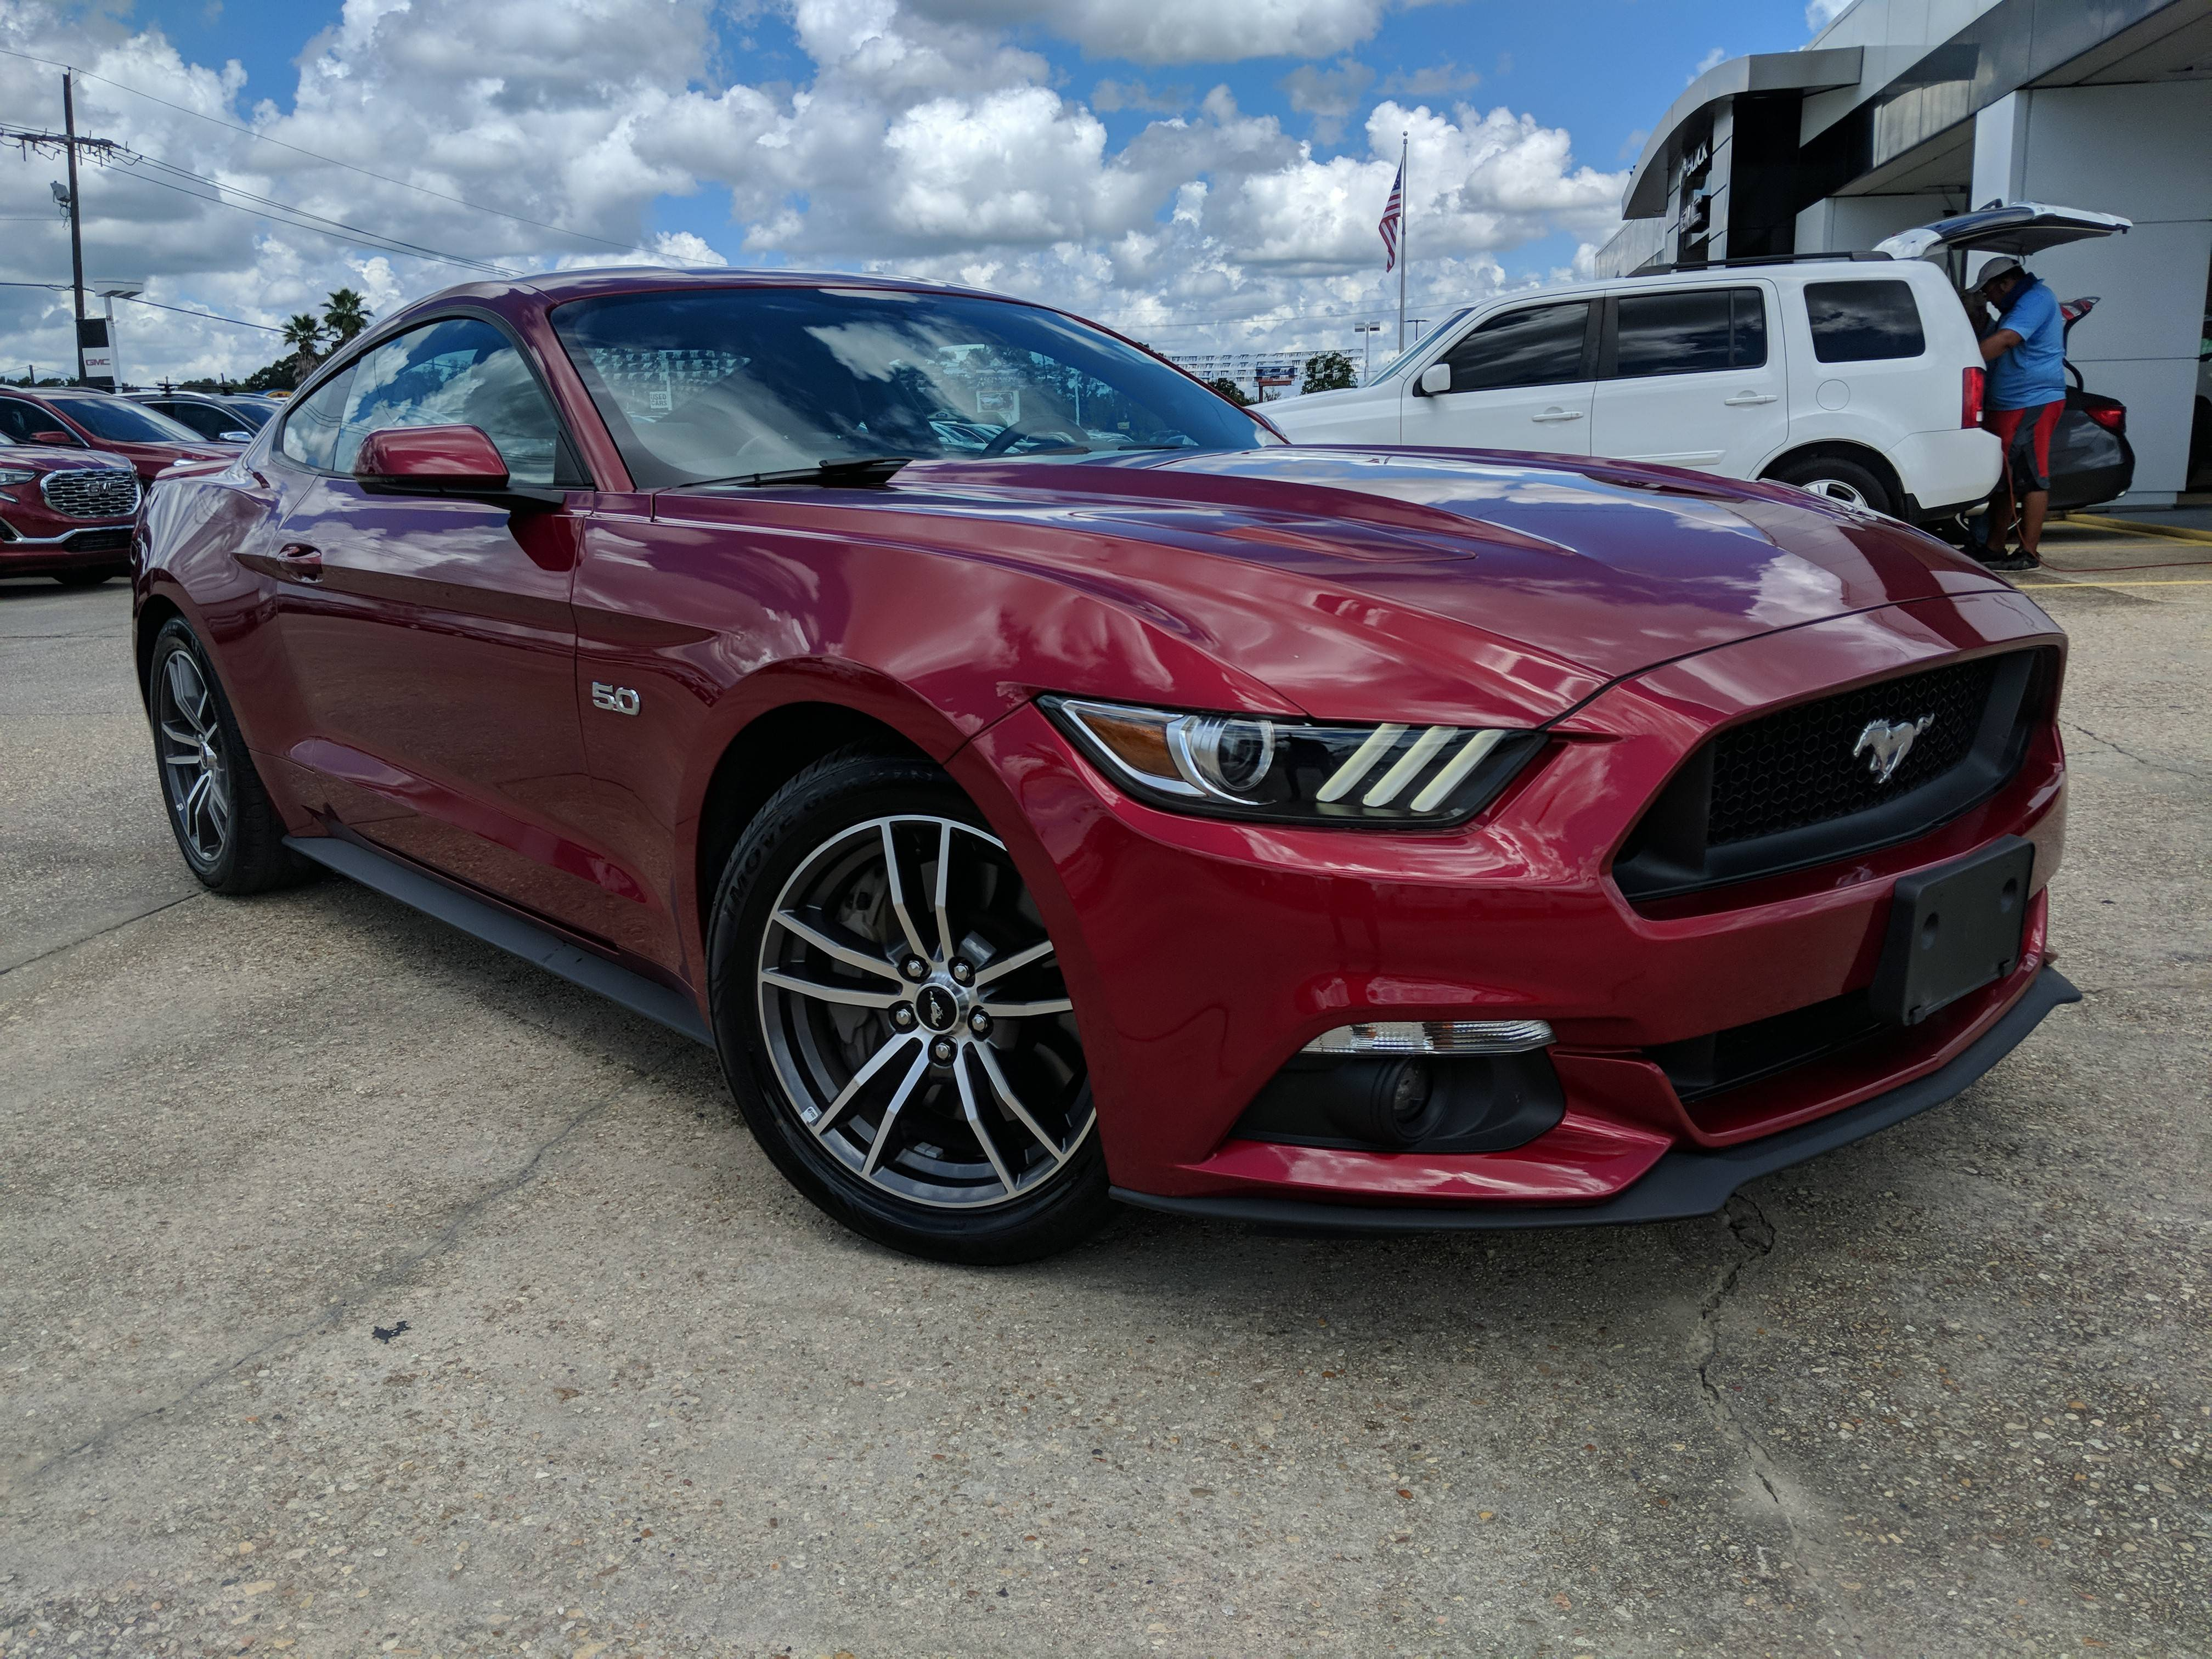 Gonzales 2017 Ford Mustang Vehicles for Sale